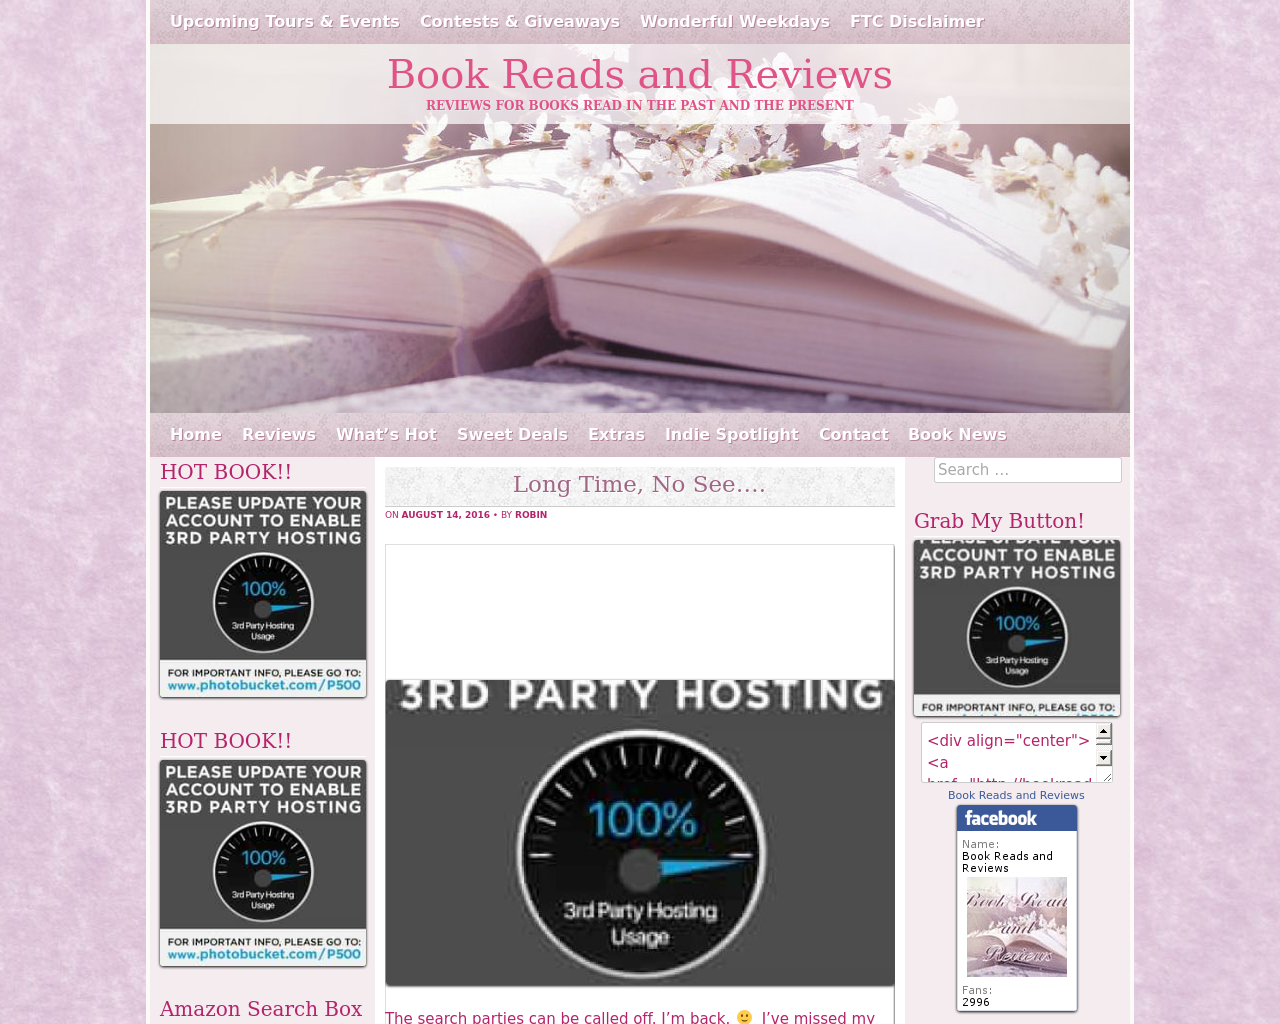 Book-Reads-and-Reviews-Advertising-Reviews-Pricing